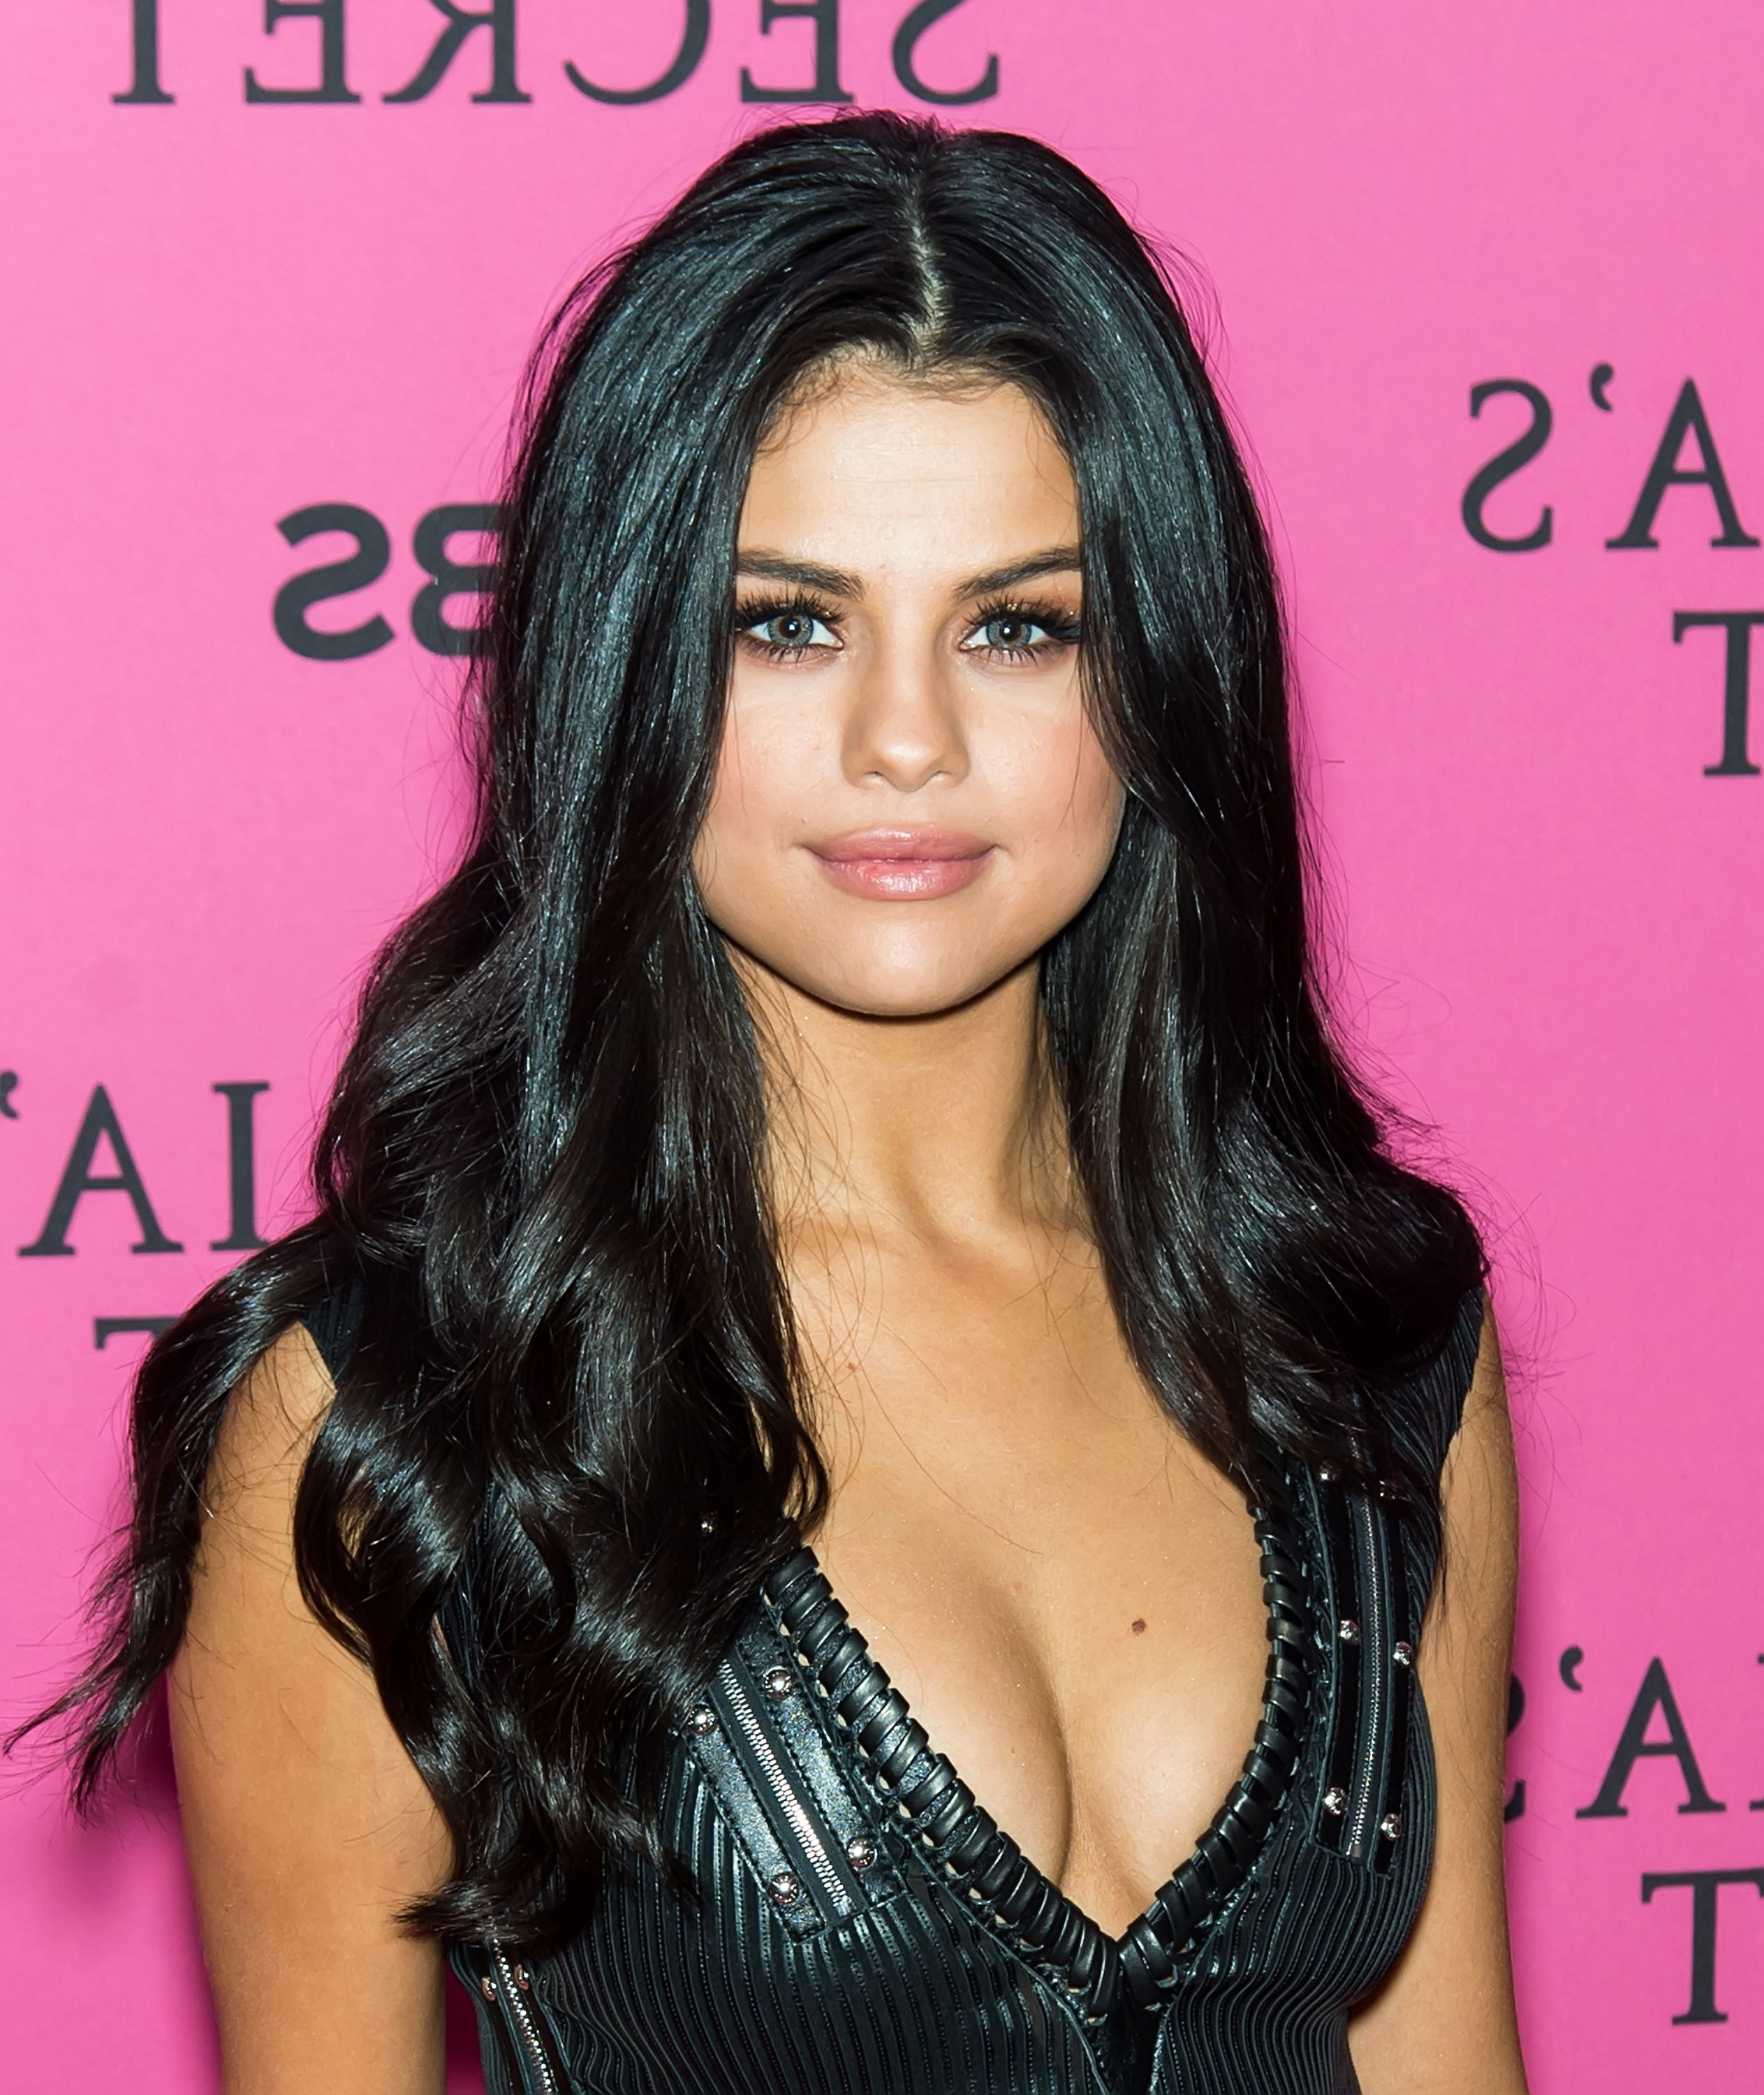 30+ Best Selena Gomez Hairstyles, From Short Hair And Shaved To Bangs In Selena Gomez Short Hairstyles (View 12 of 25)